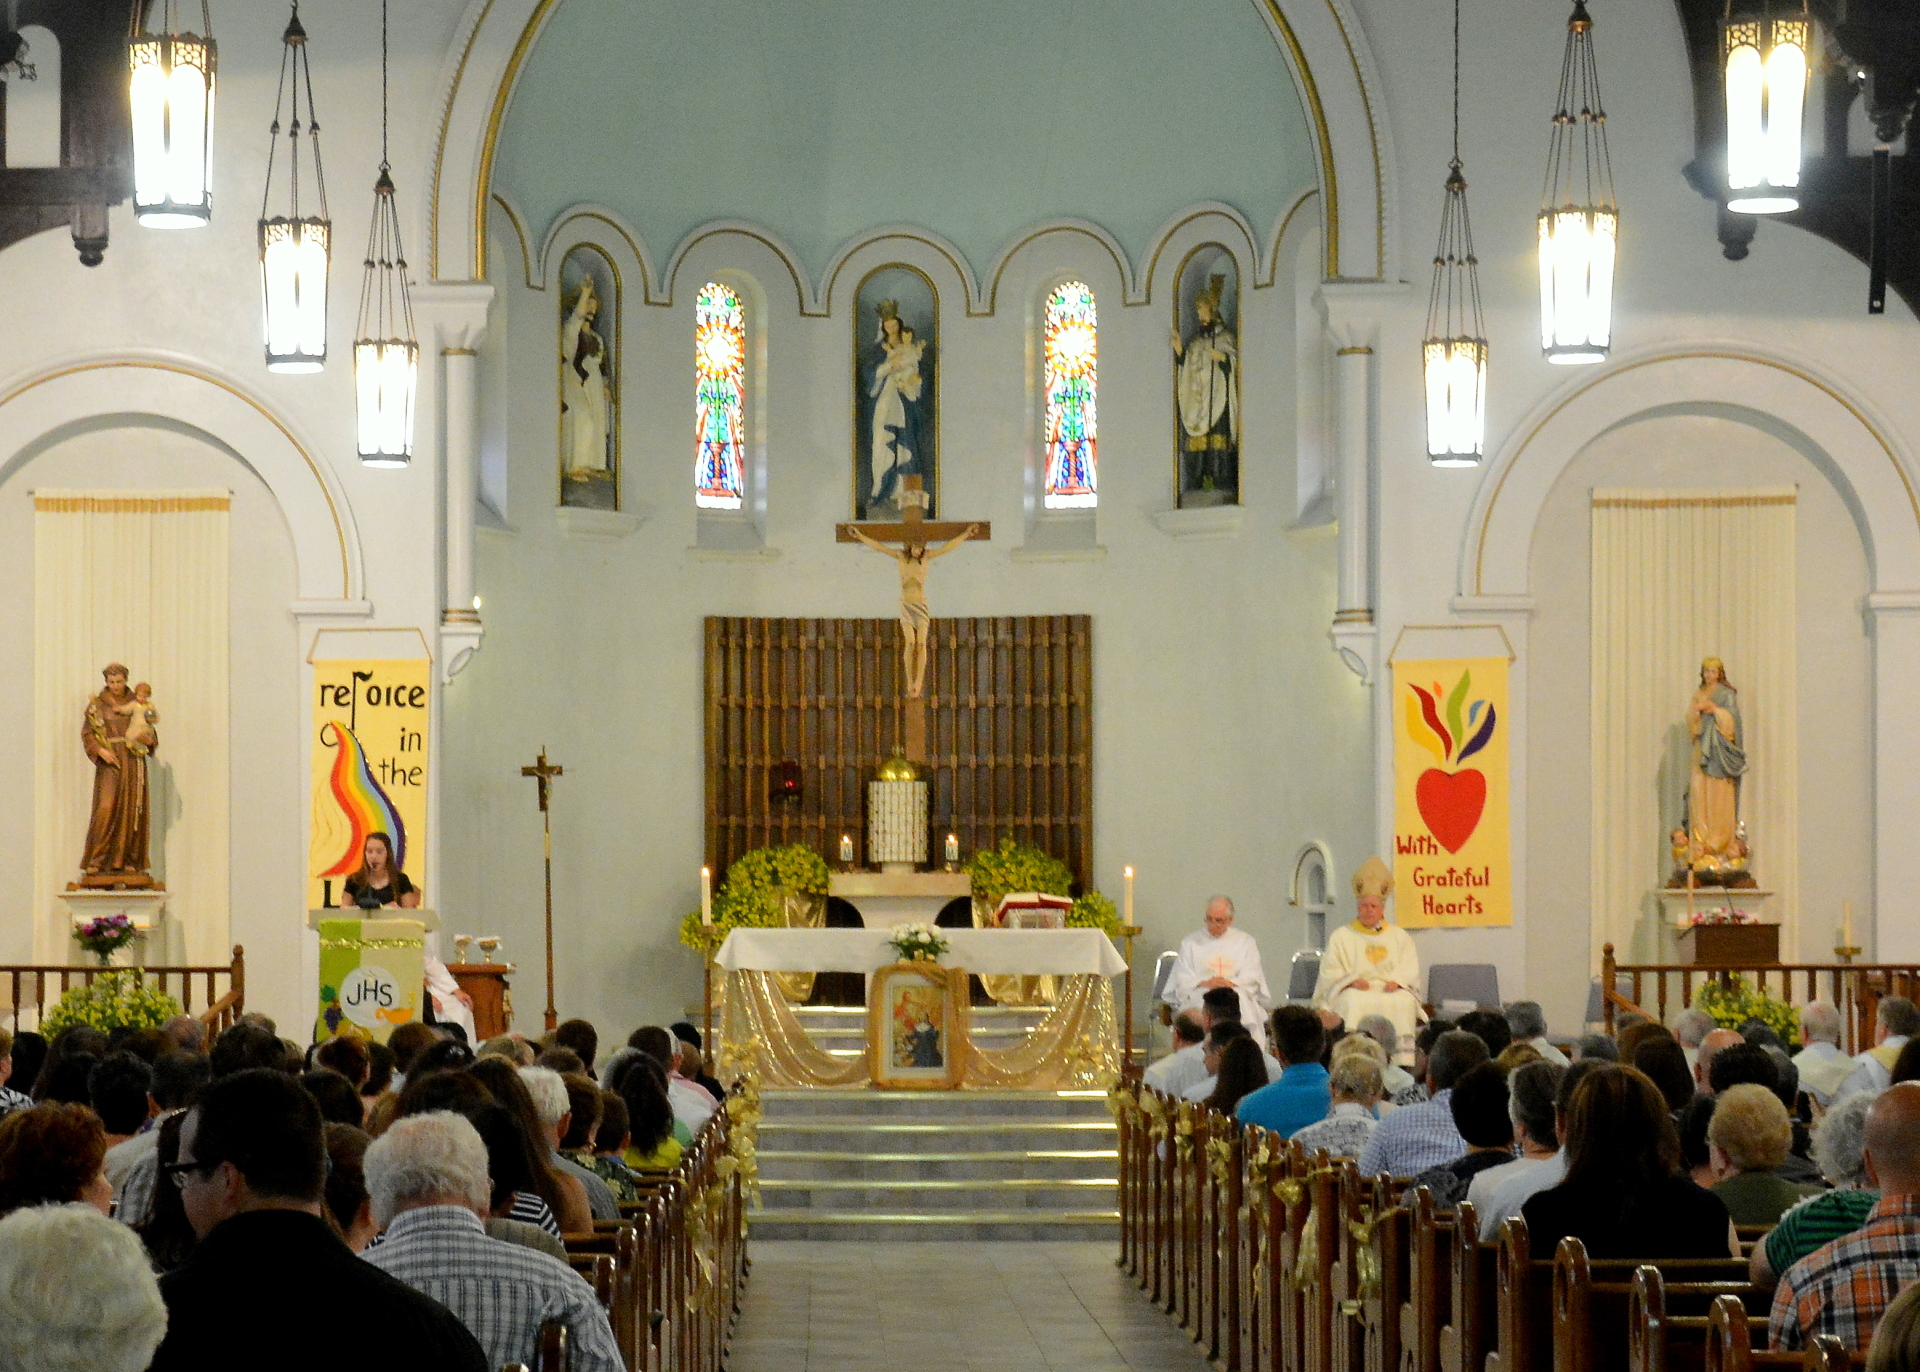 The Celebration of the Holy Eucharist